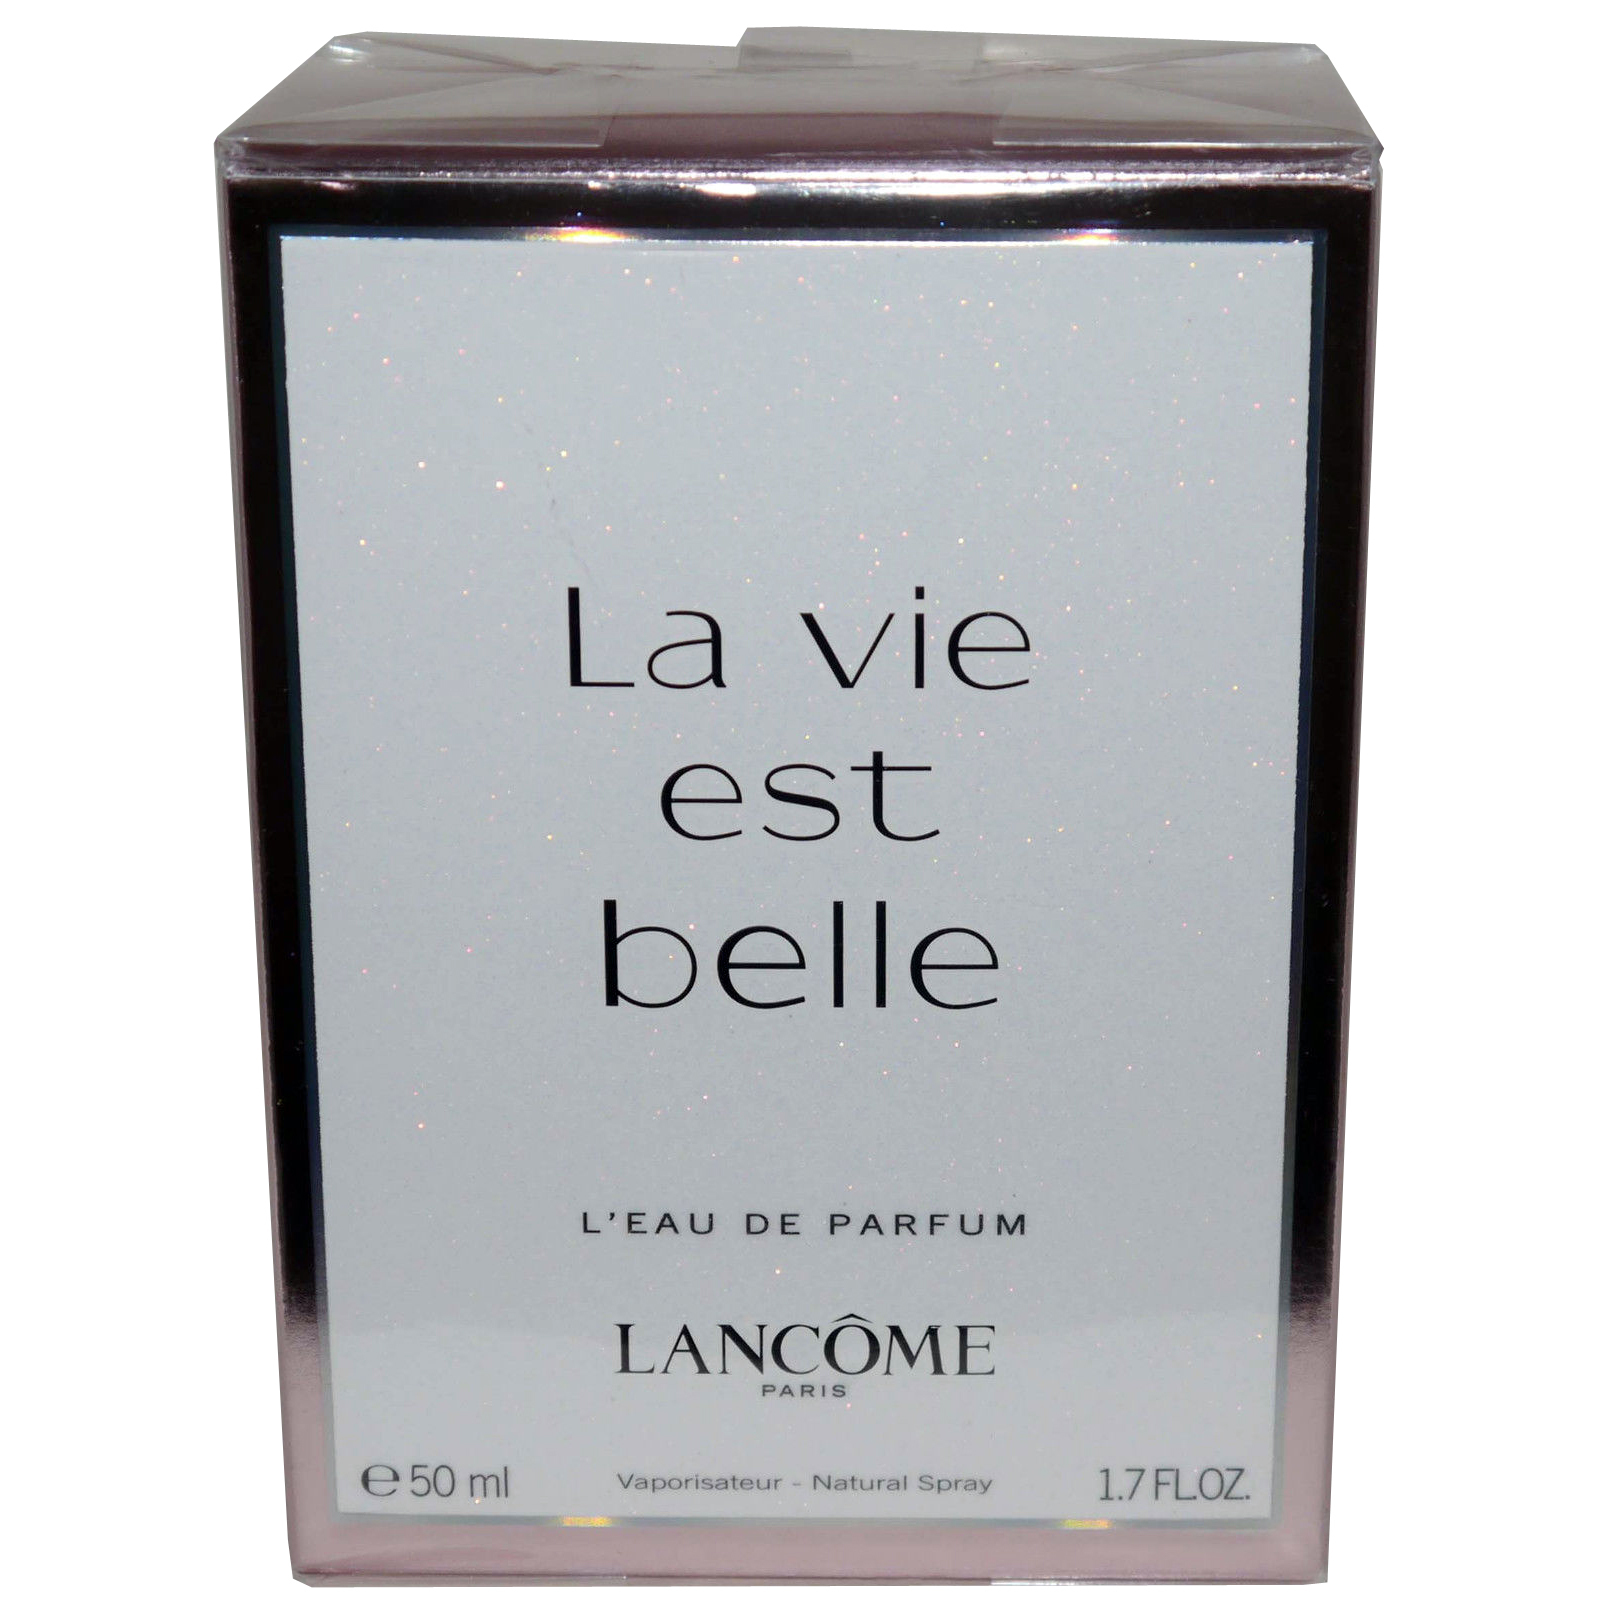 Lancome Paris La vie est belle L'eau de Parfum Natural Spray 1.7 oz (50 ml) 13481